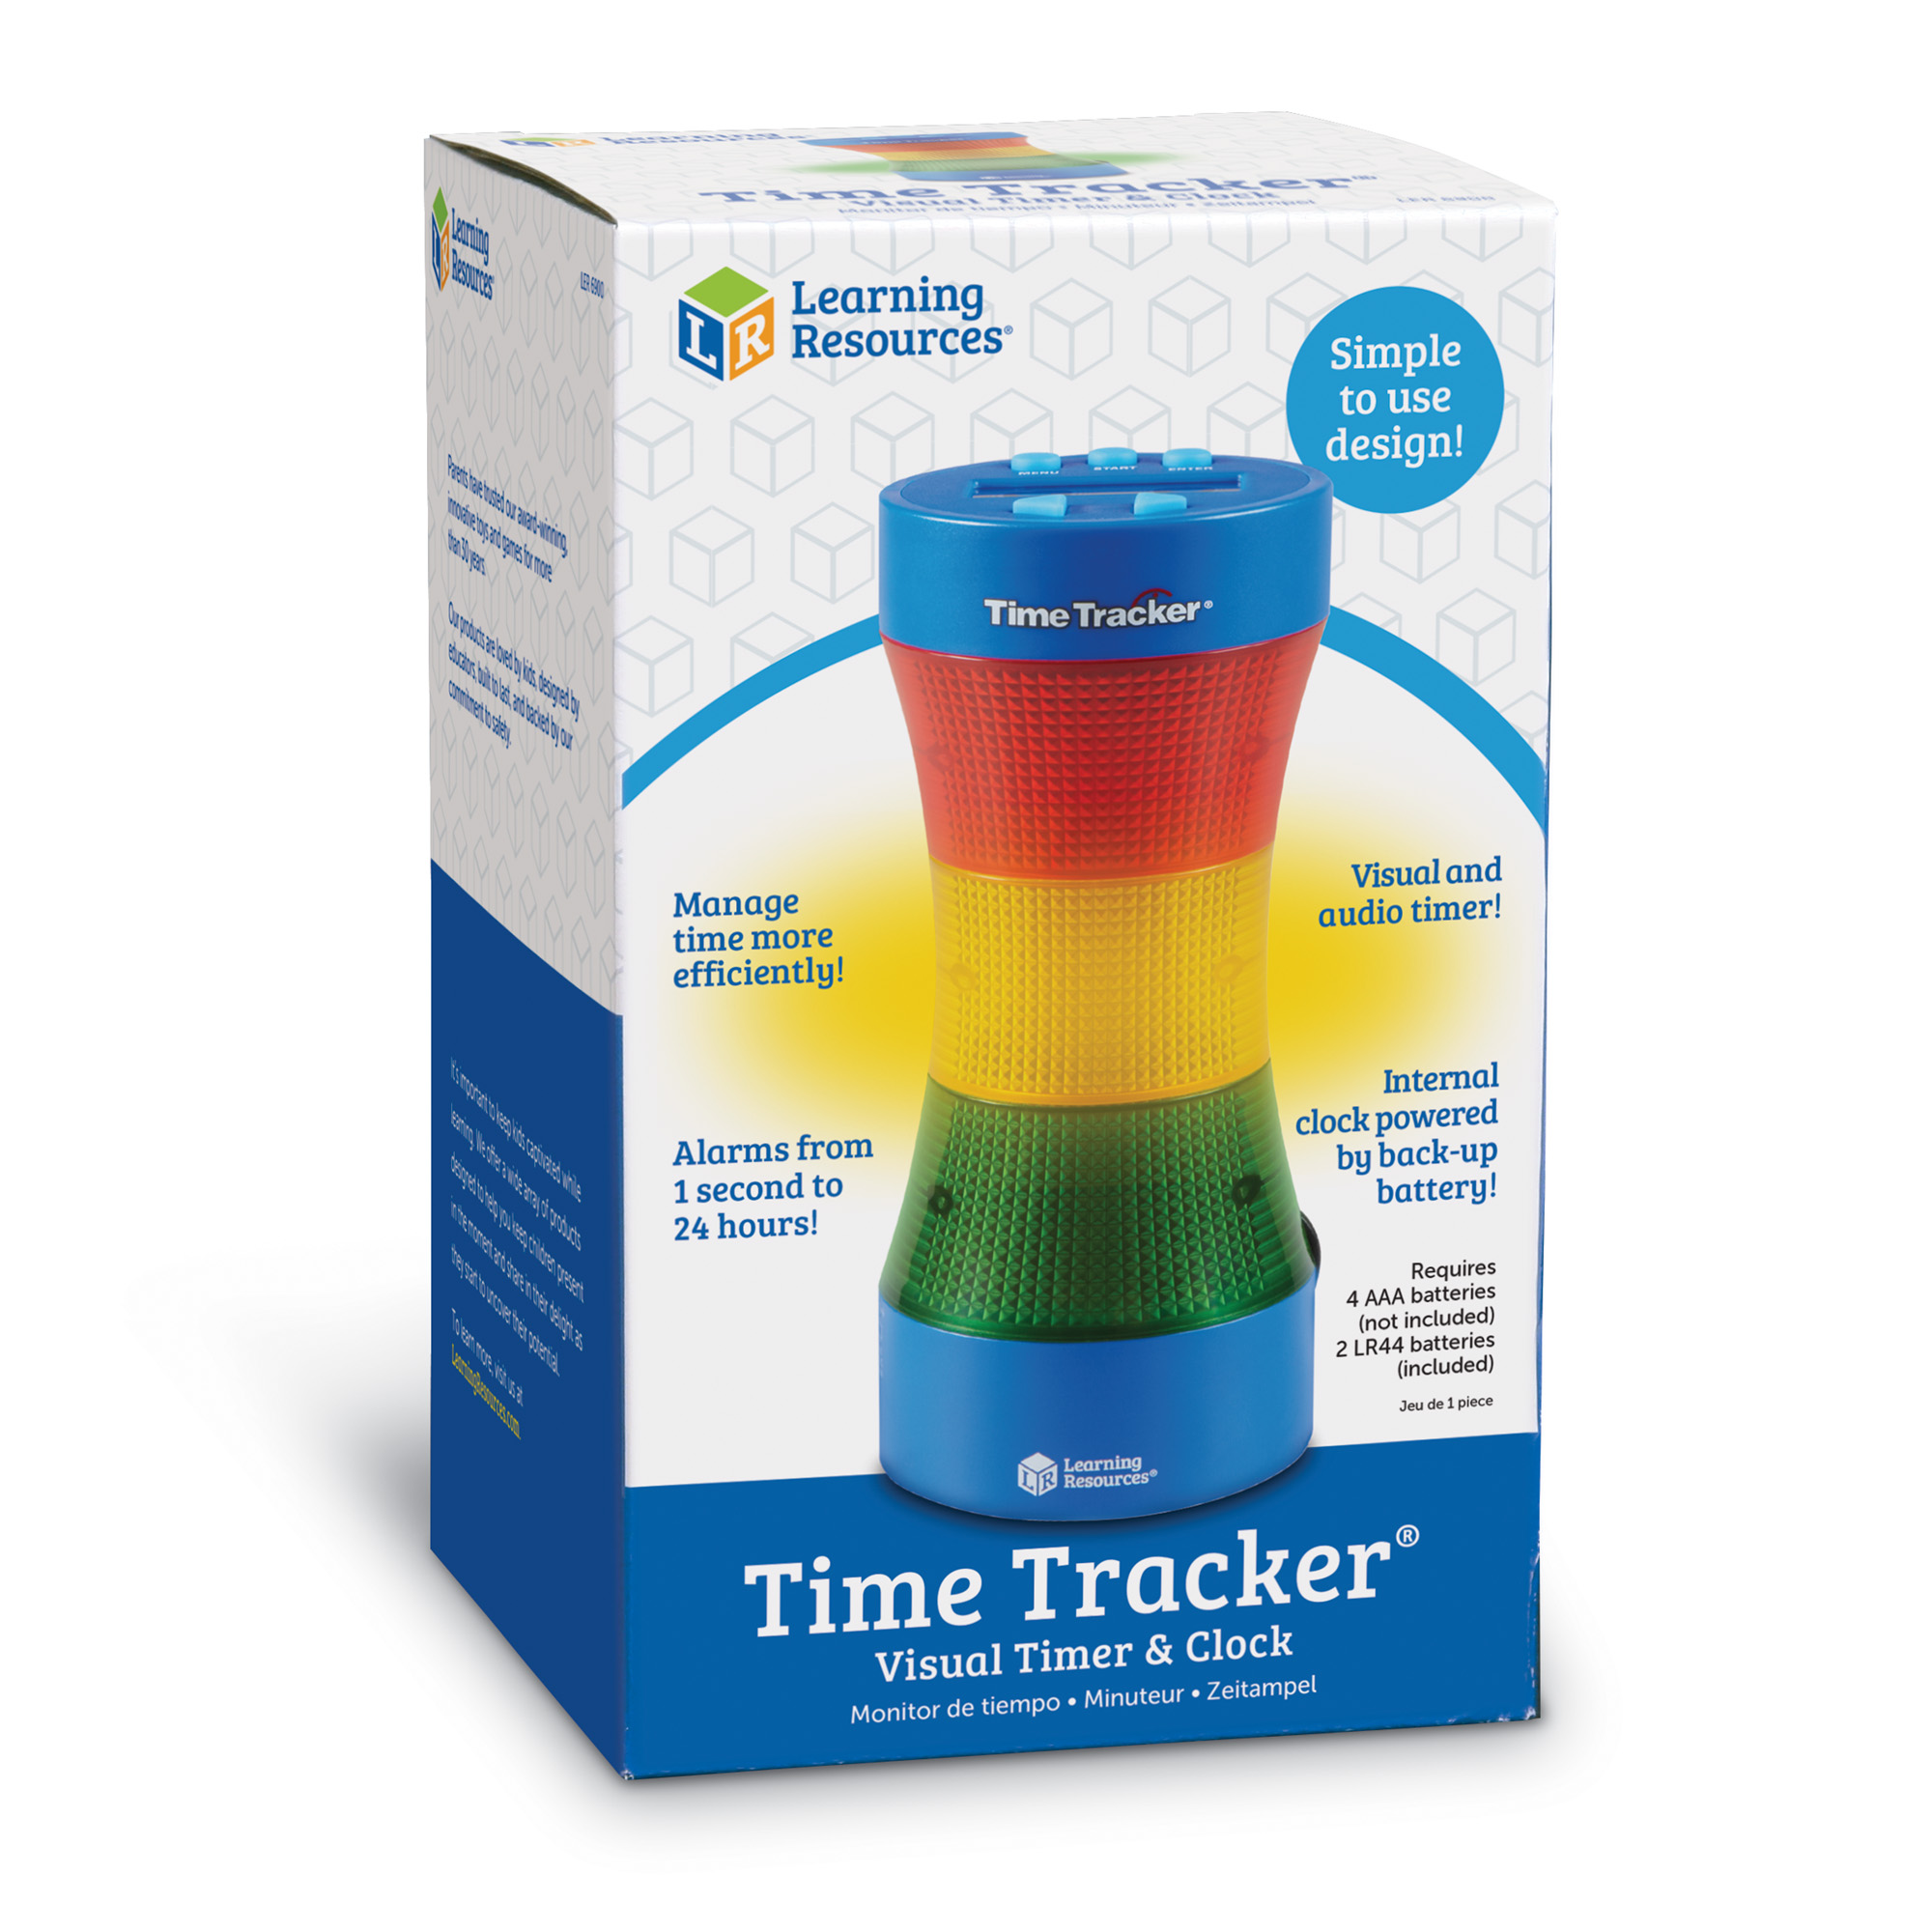 Learning Resources Time Tracker Classroom Timer - Walmart.com